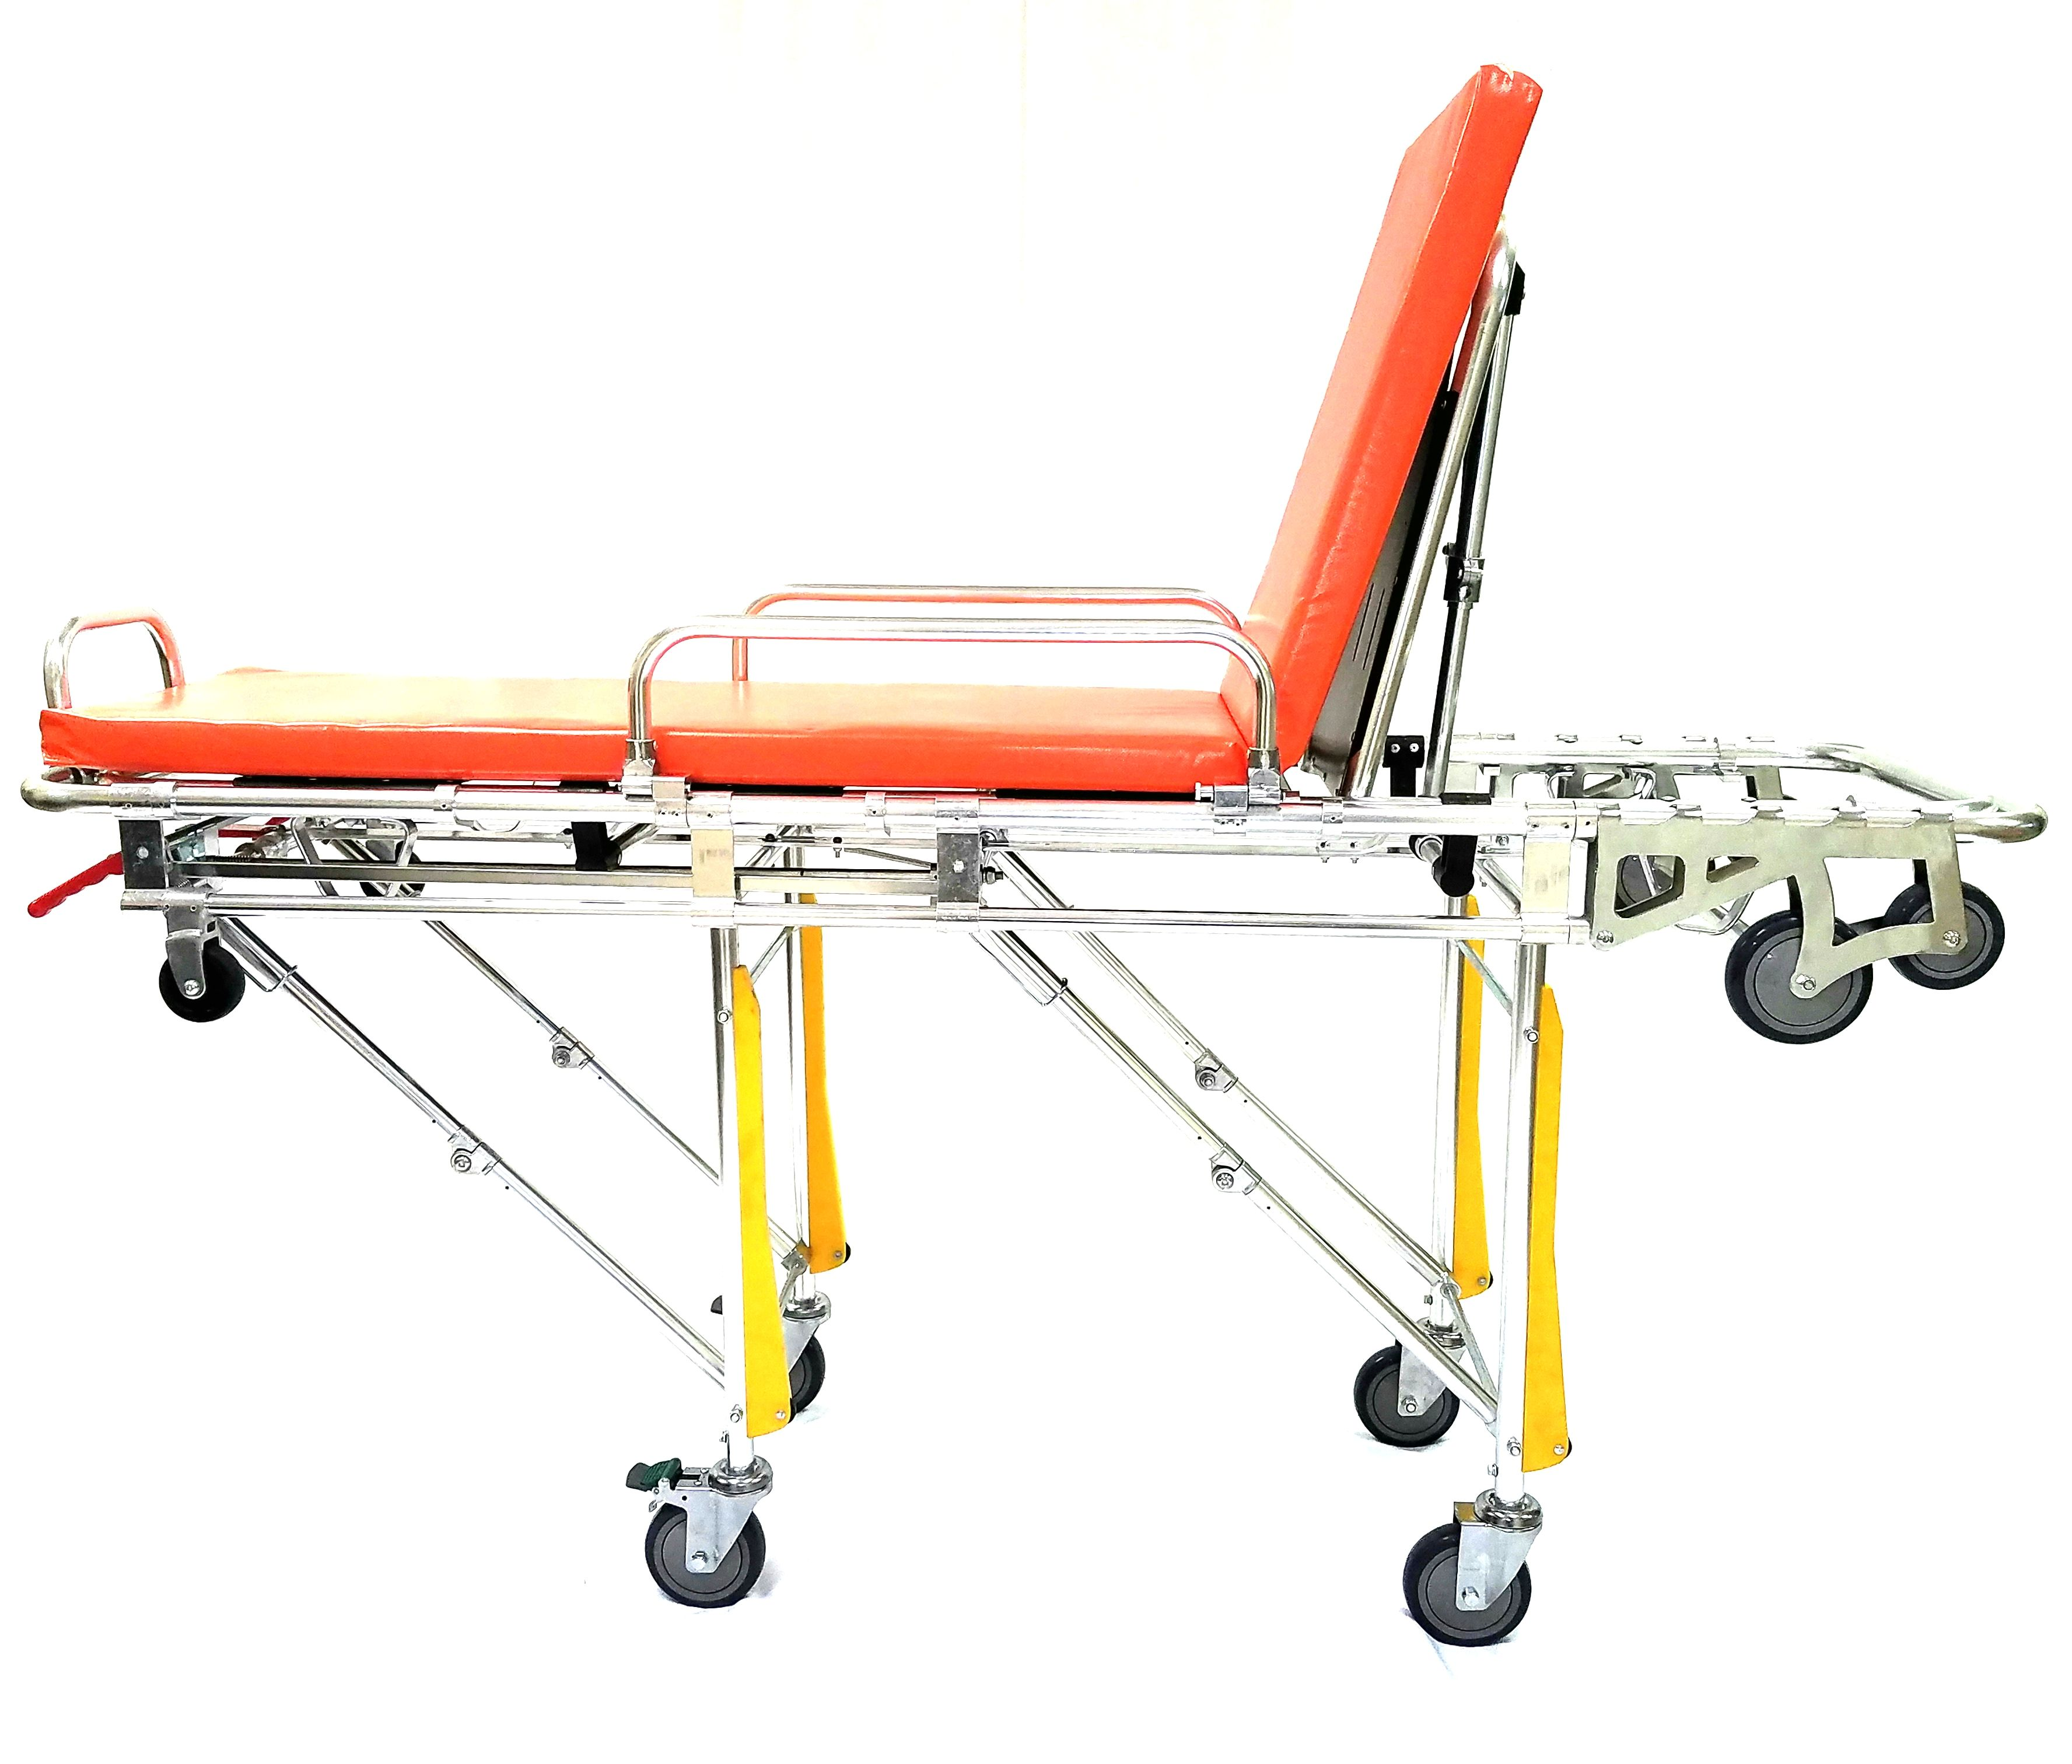 MS3C-AL500 Double Top EMS Stretcher Weight Capacity 350 lbs.